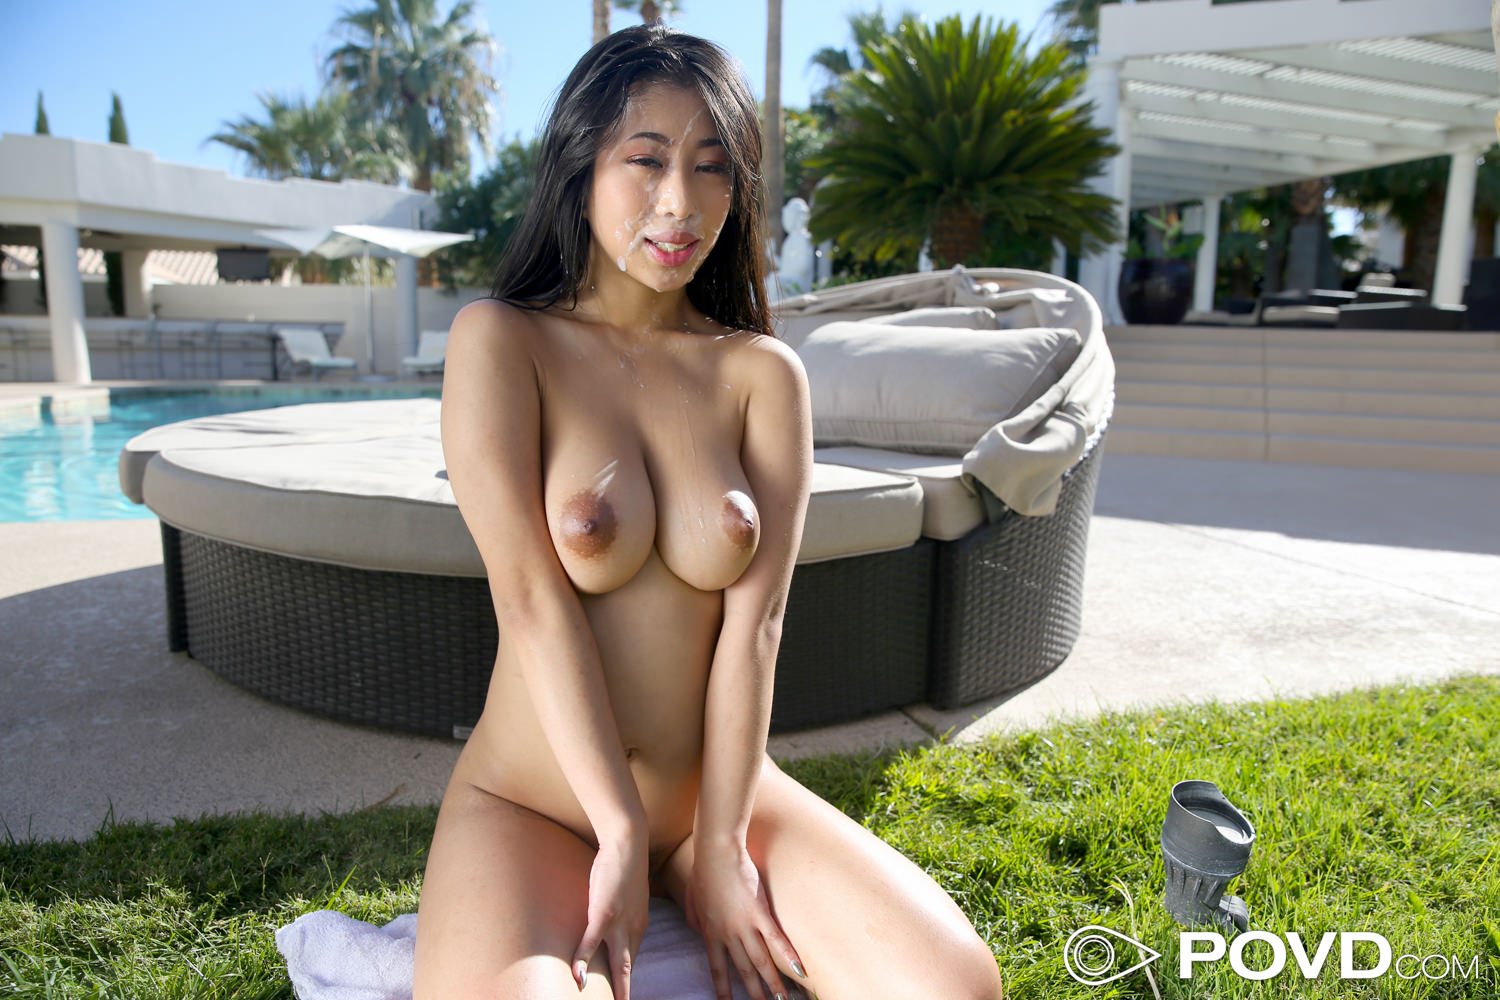 Jade from the hookup